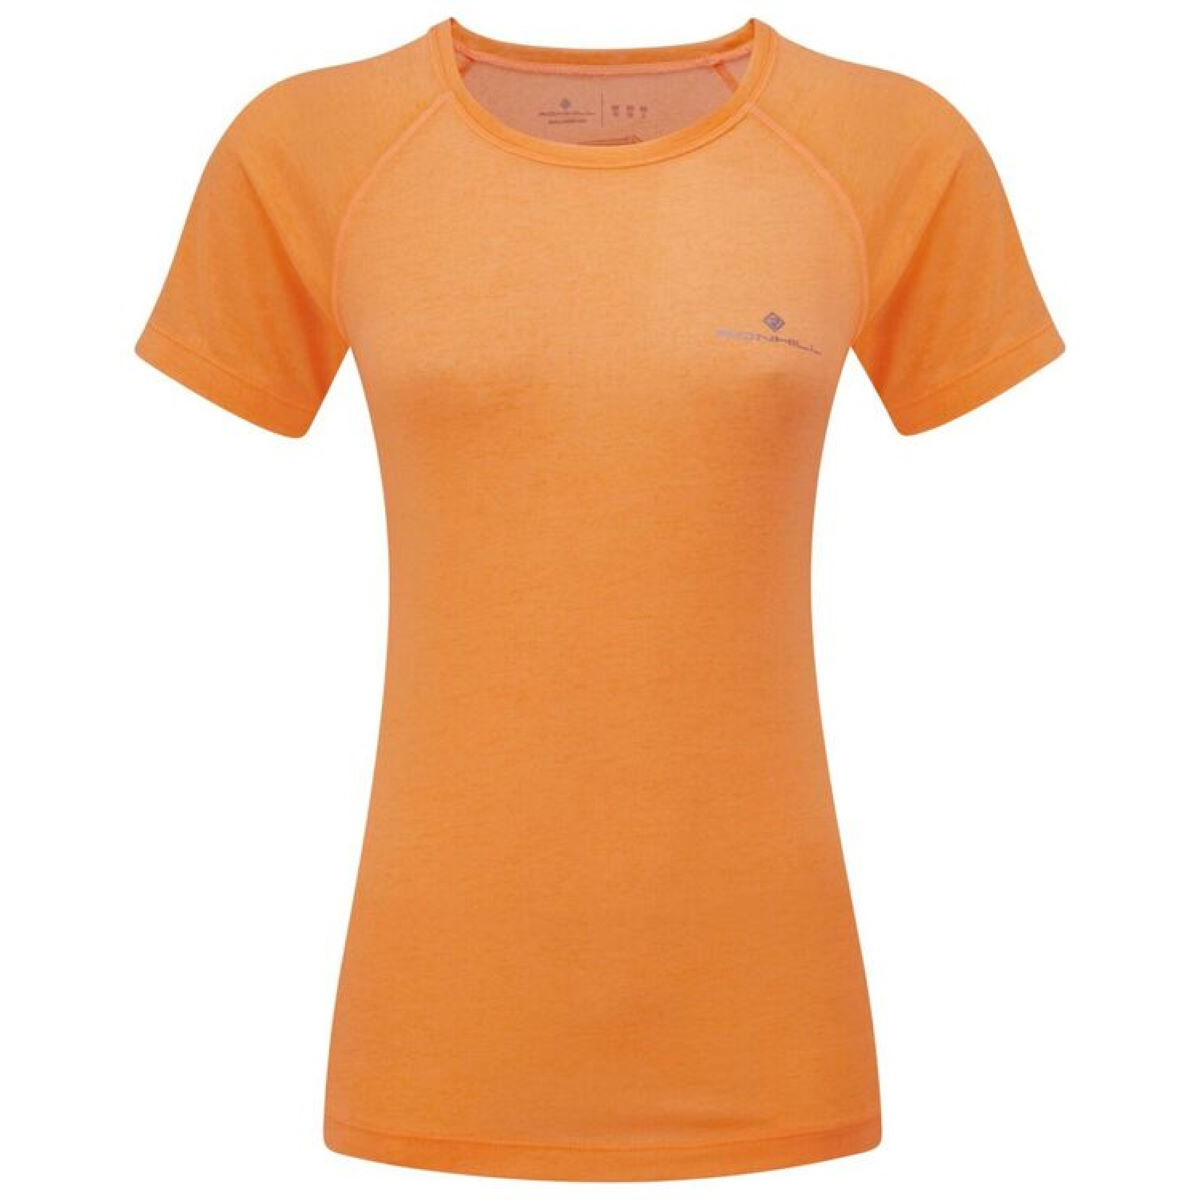 Maillot Femme Ronhill Momentum (manches courtes, PE17) - 10 UK